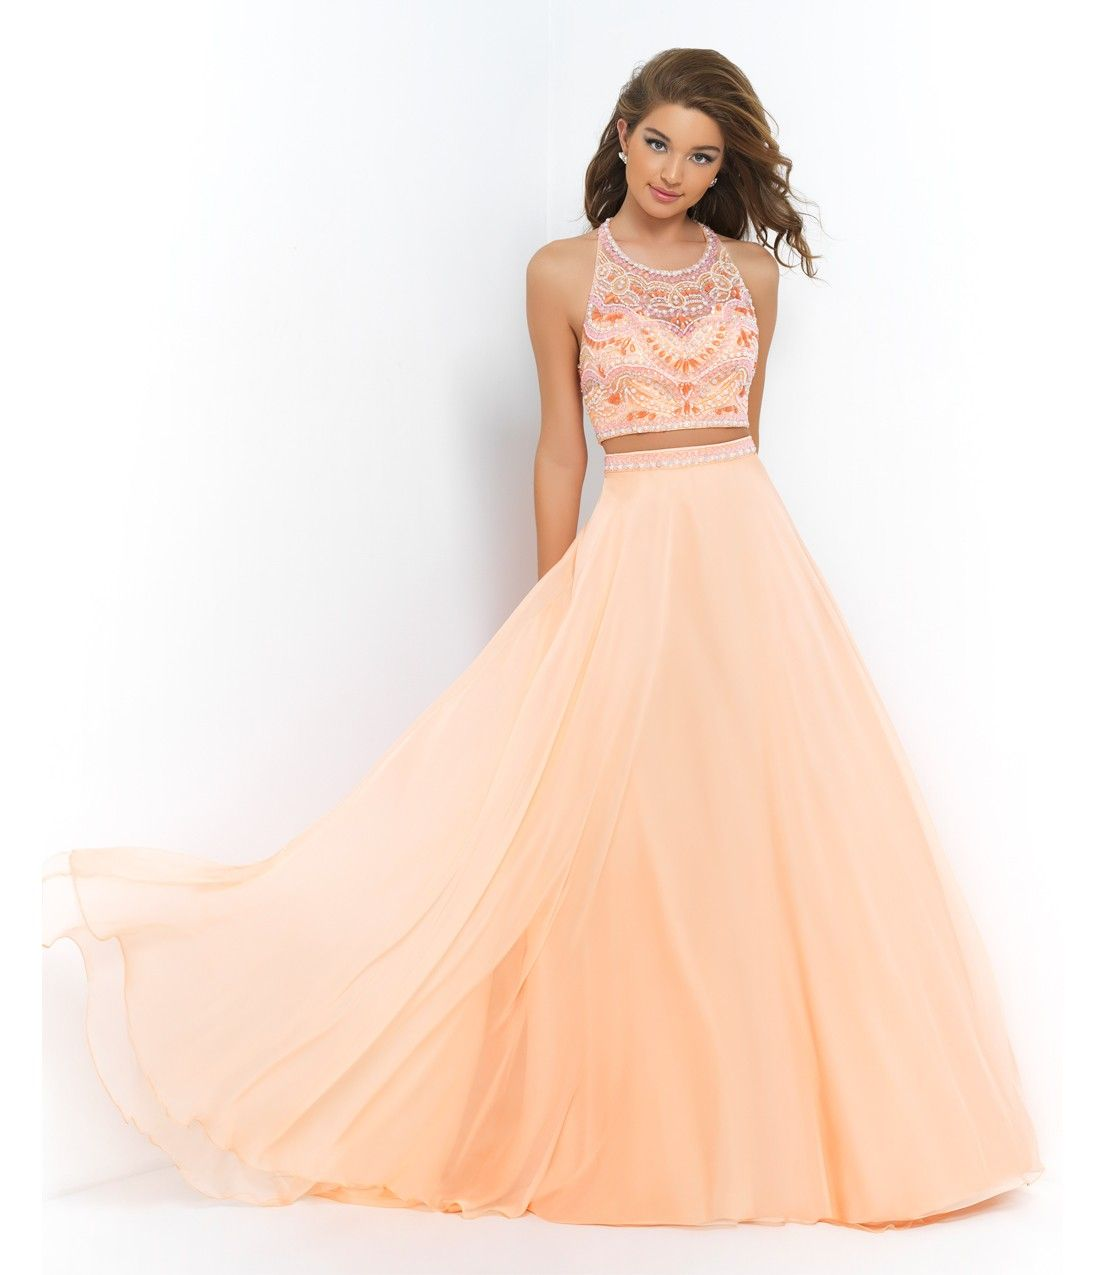 Cantaloupe Orange Two Piece Beaded Crop Top & Long Skirt - Unique ...